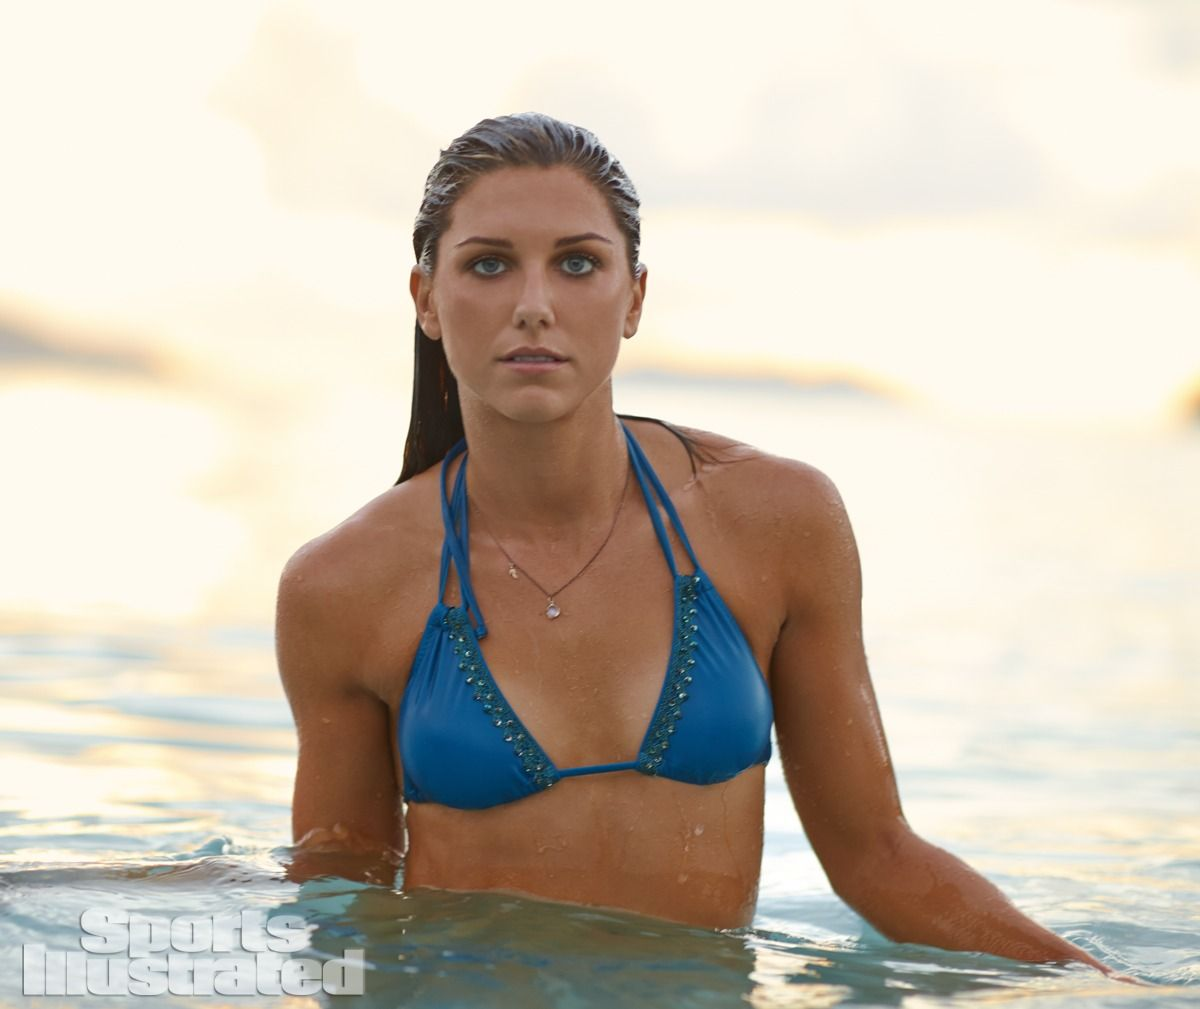 alex-morgan-in-sports-illustrated-2014-swimsuit-issue_14.jpg - 81.27 KB